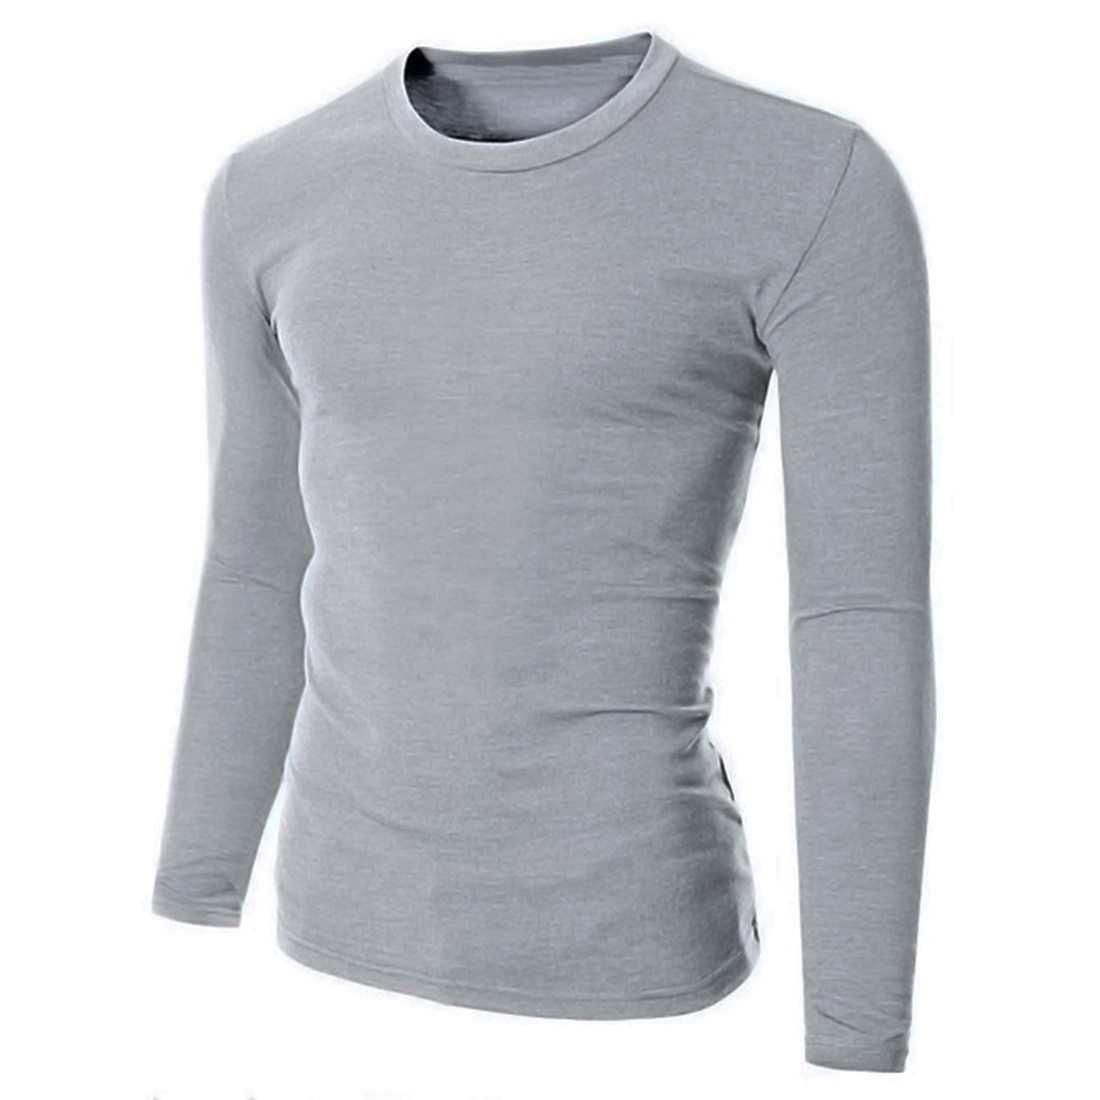 Long-sleeve t-shirt in stretch cotton featuring V-neckline and logo at chest. Gildan Heavy Cotton % Cotton Long Sleeve T-Shirt. by Gildan. $ - $ $ 4 $ 22 99 Prime. FREE Shipping on eligible orders. Some sizes/colors are Prime eligible. out of 5 stars Product Features.